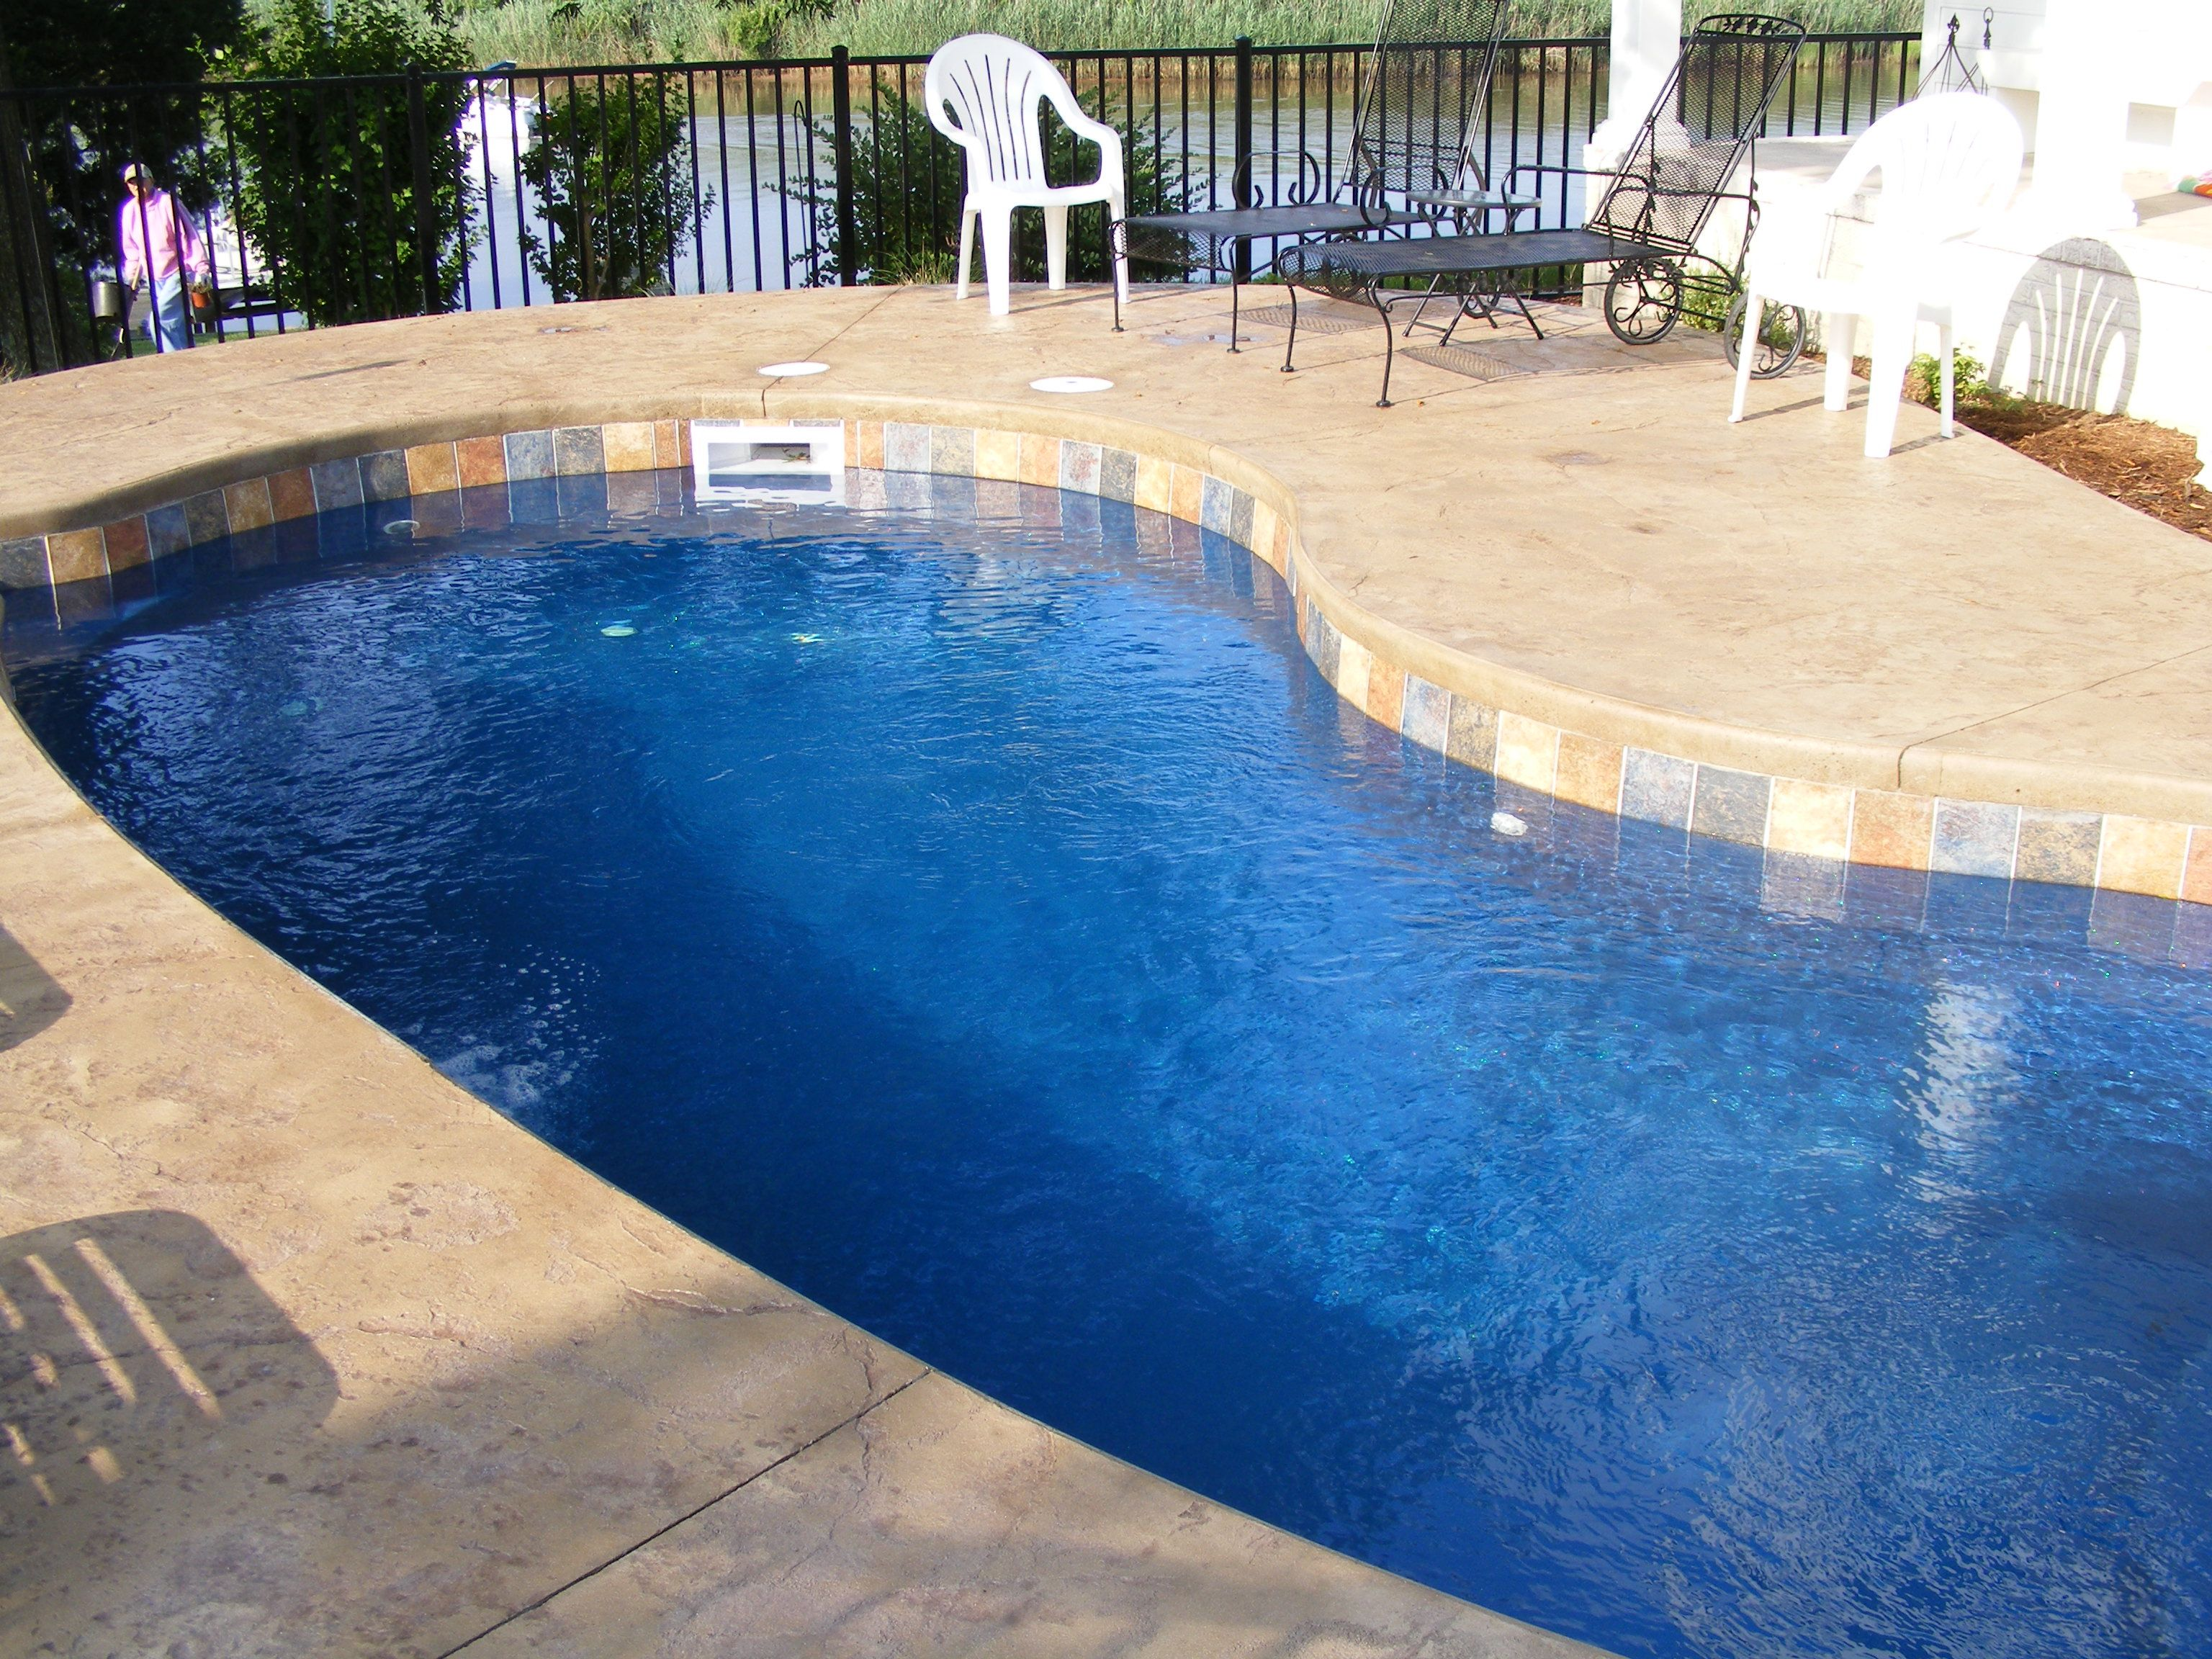 Fiberglass Pool Ideas small inground fiberglass pool Fiberglass Pool Coping Paver Vs Cantilevered Concrete Quick Comparison